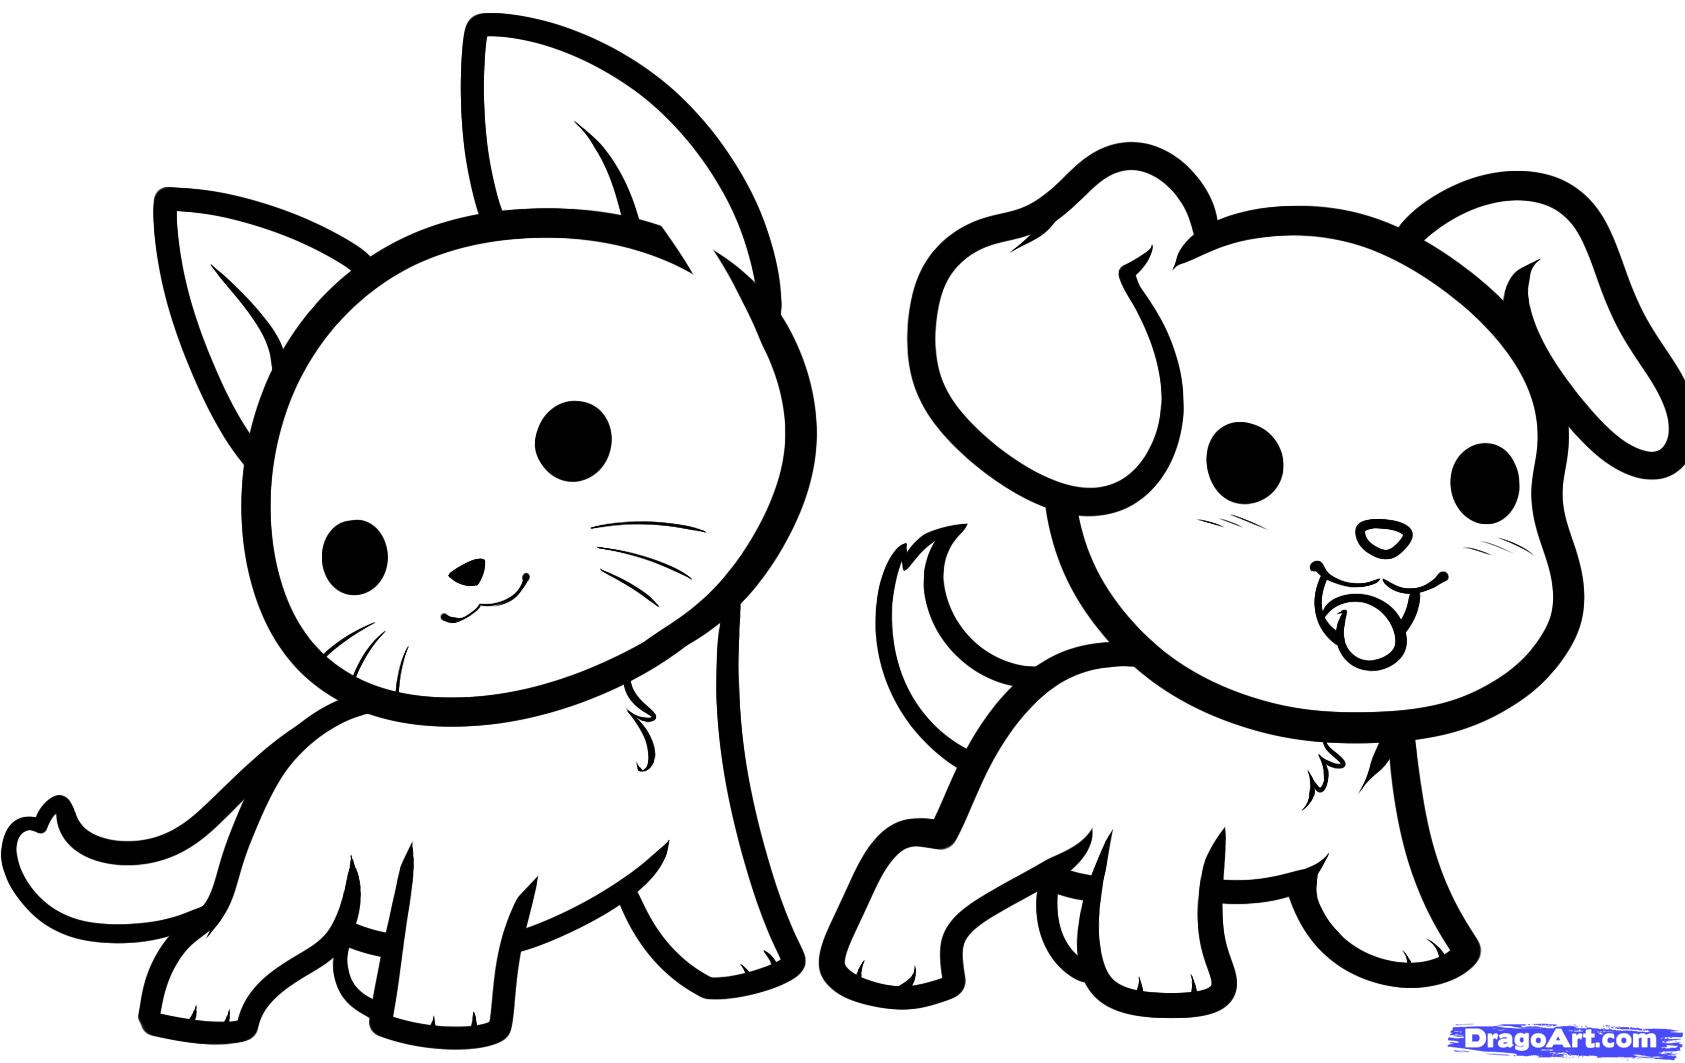 how-to-draw-kawaii-animals-step-7_1_000000093335_5